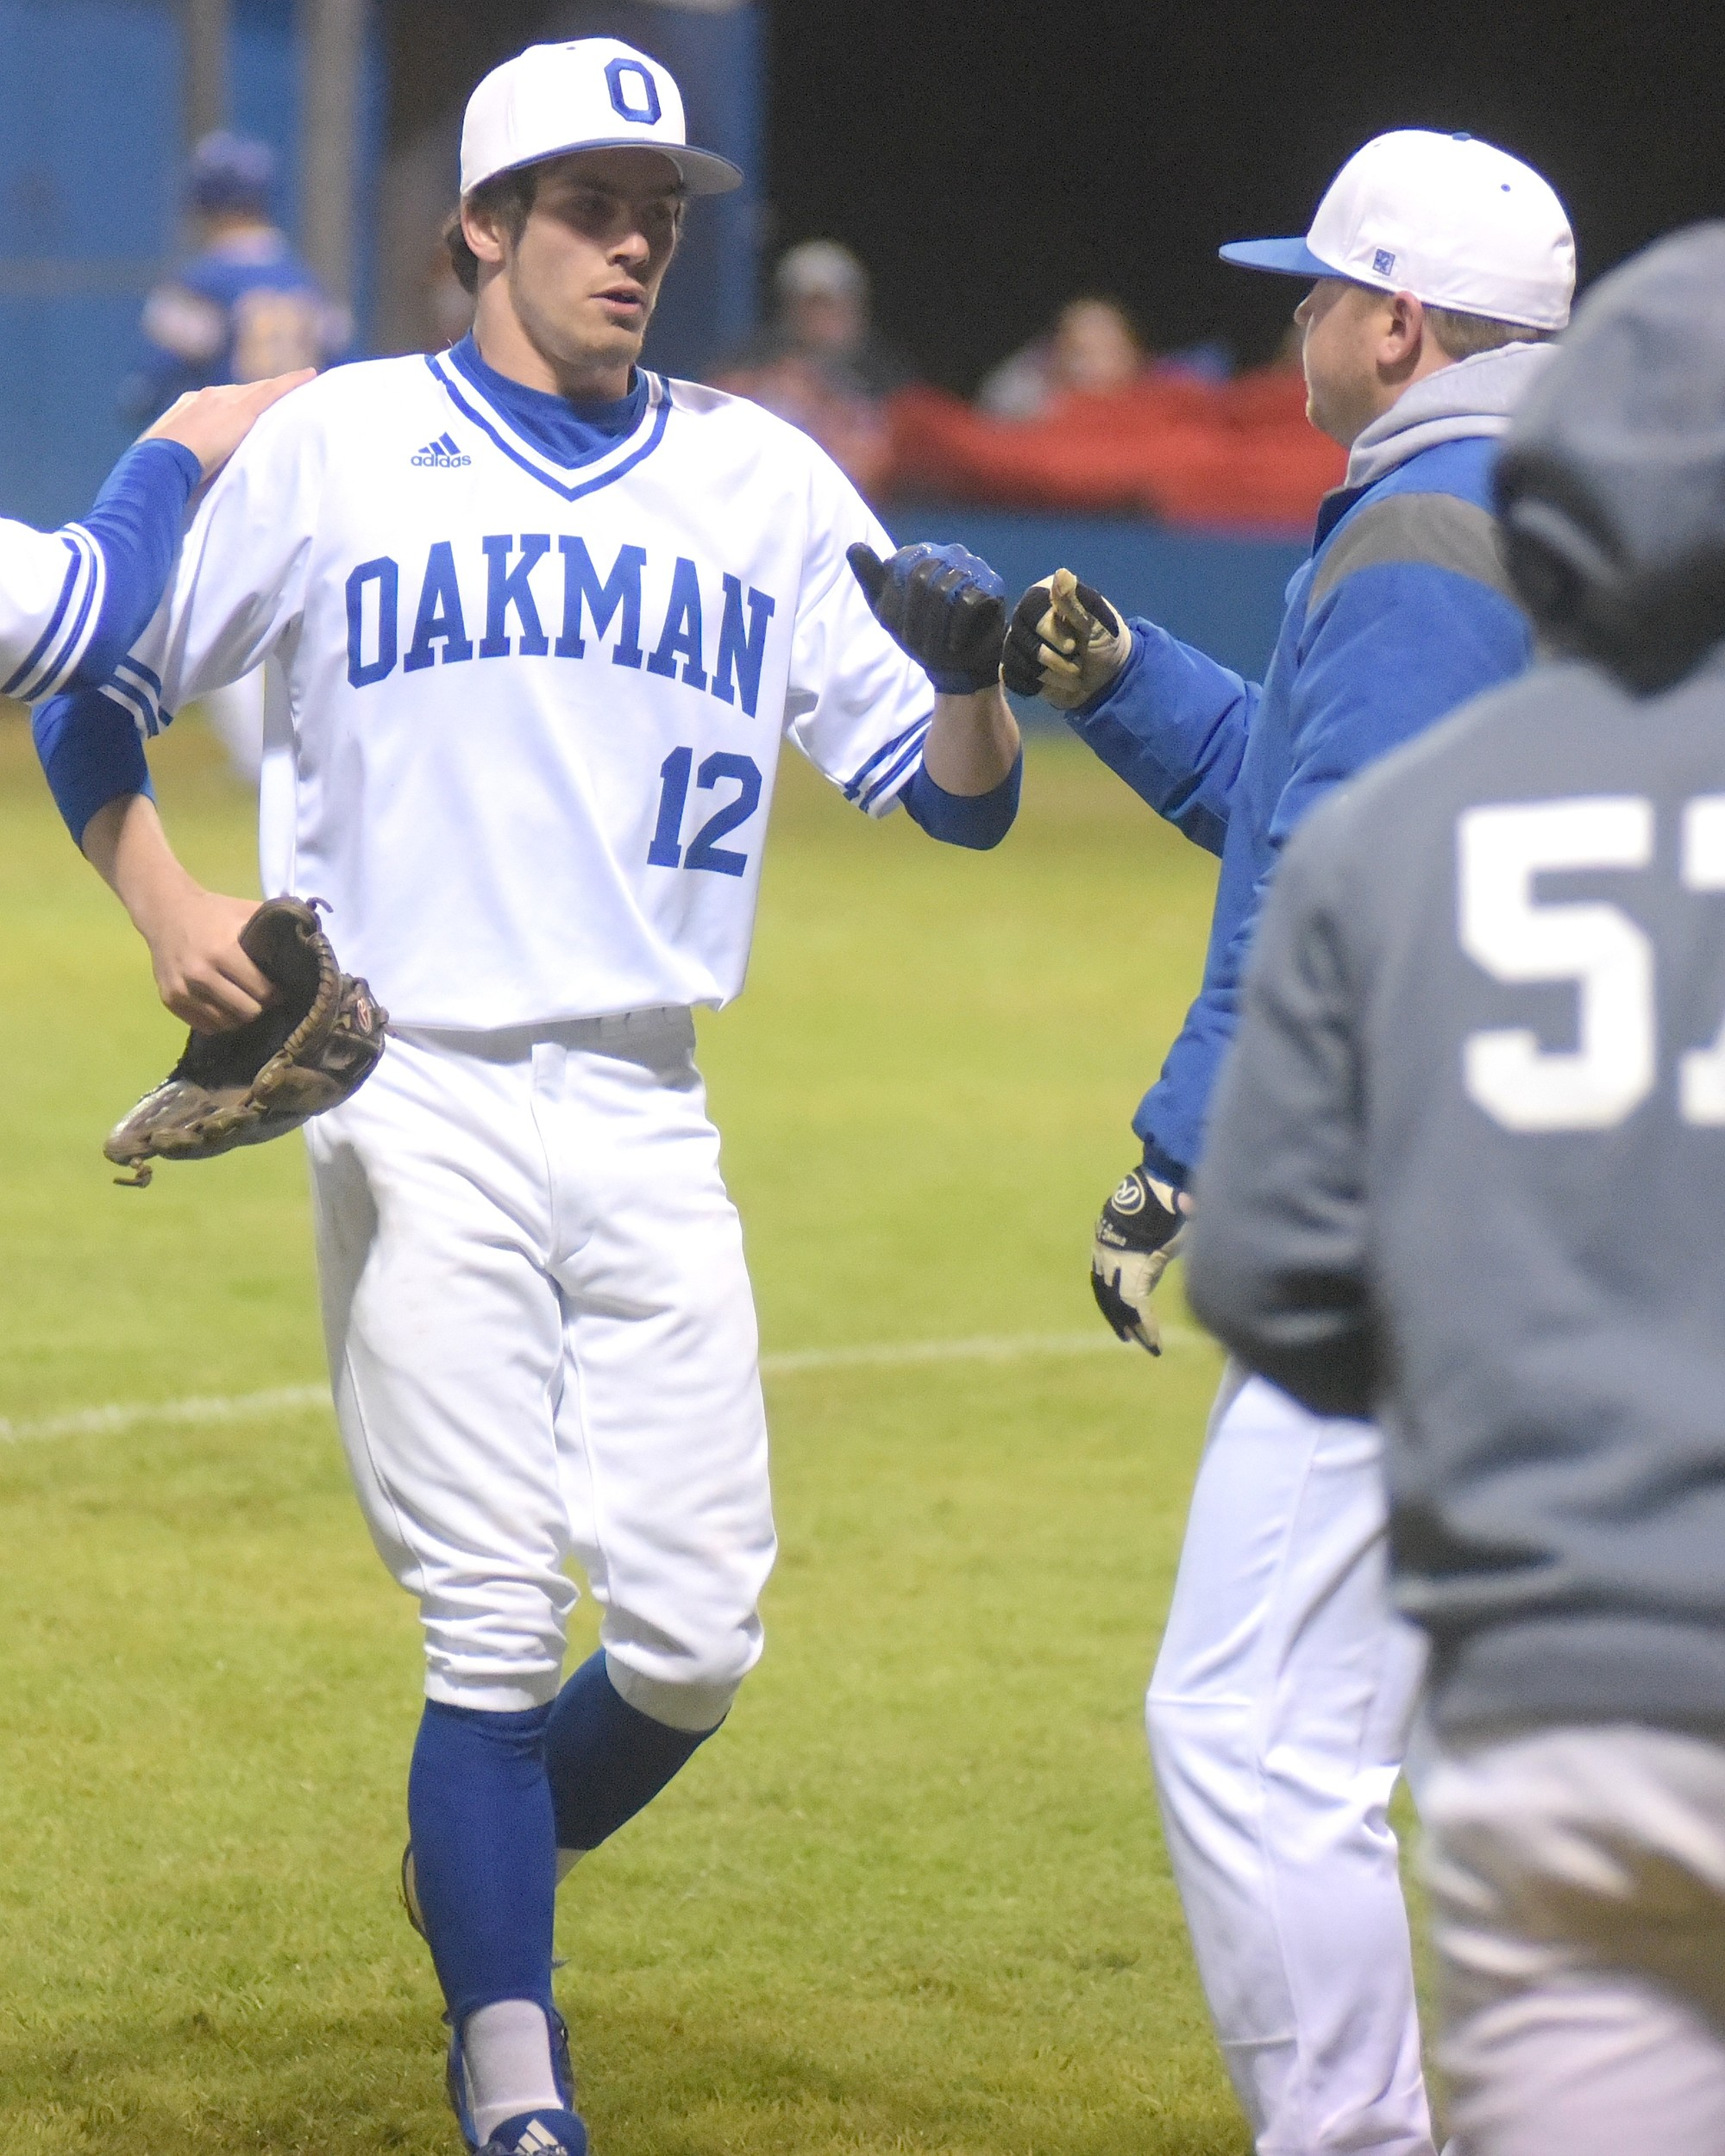 Oakman's CJ Hall (12) is greeted by coach Caleb Hoyle after retiring the Curry Yellow Jackets in the second inning Thursday. Hall tossed a two-hitter, striking out 12 baters as Oakman earned the Walker County Baseball Tournament title with an 8-0 win at Curry High School.